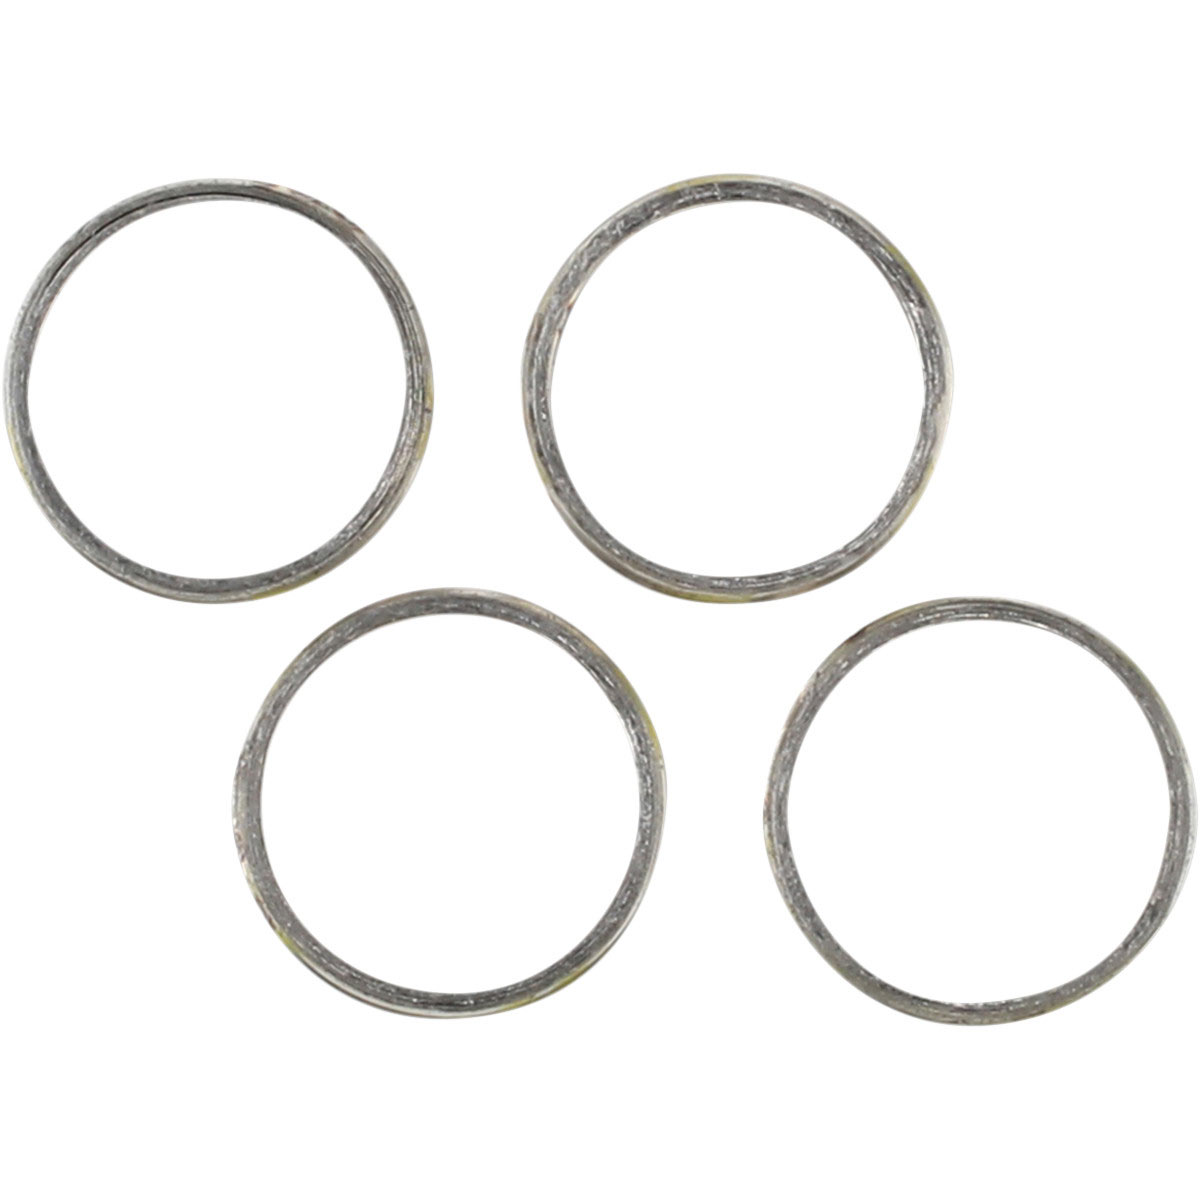 Cometic Exhaust Gasket for GSX1300R Hayabusa 99-14